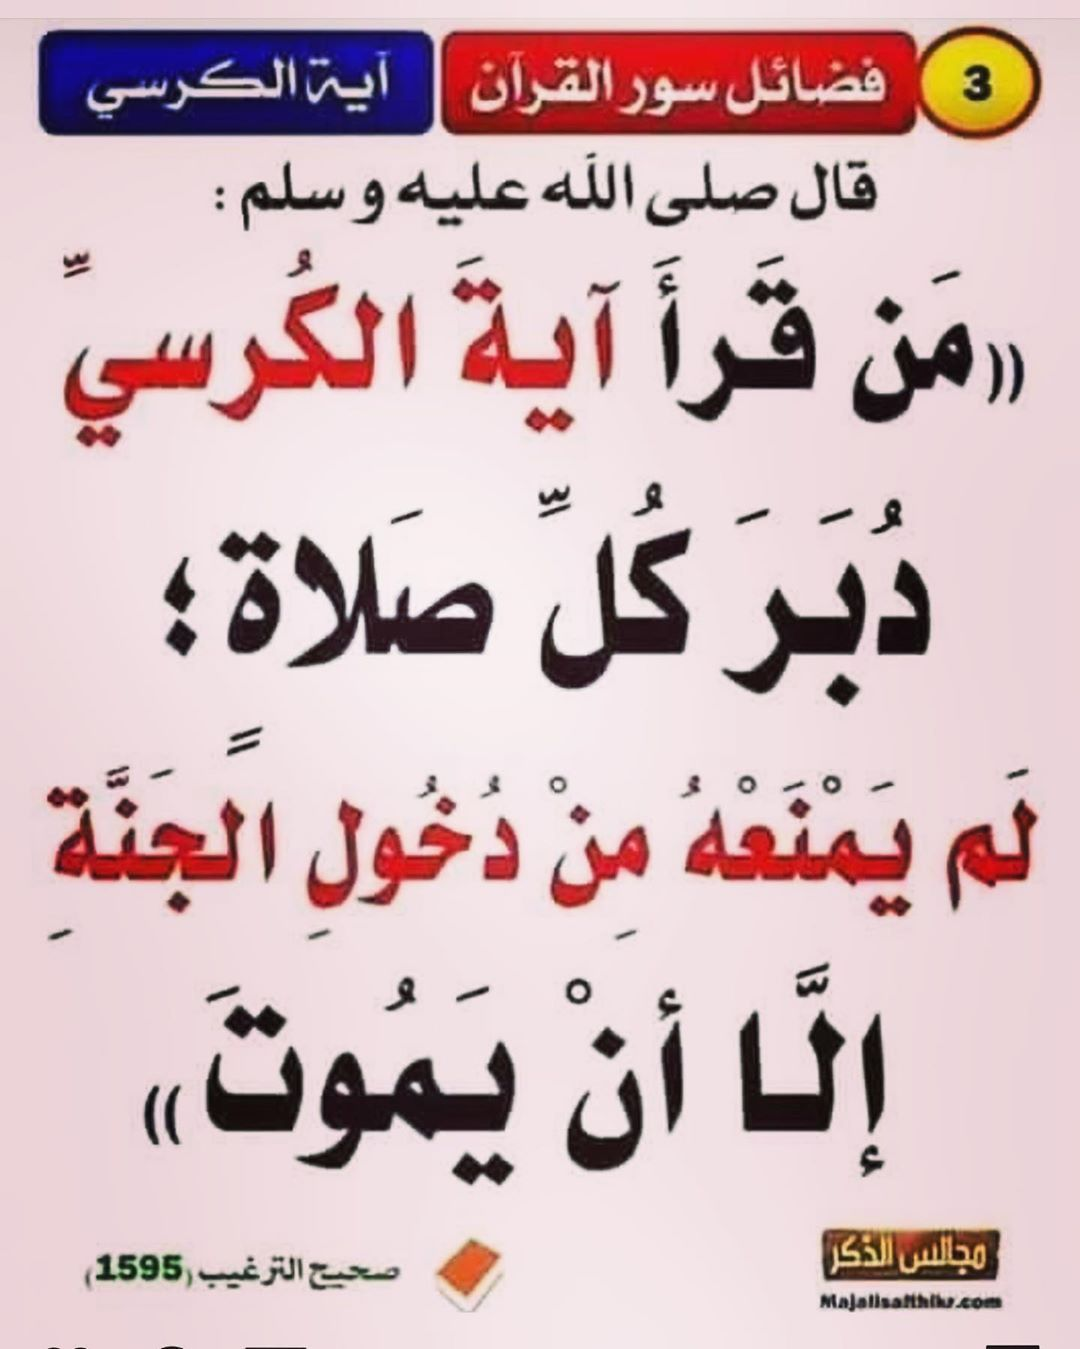 821 Likes 3 Comments Pure Pure 21forever On Instagram اللهم صل وسلم وبارك على نبينا محمد لا حول و Words Quotes Islam Facts Islamic Quotes Quran